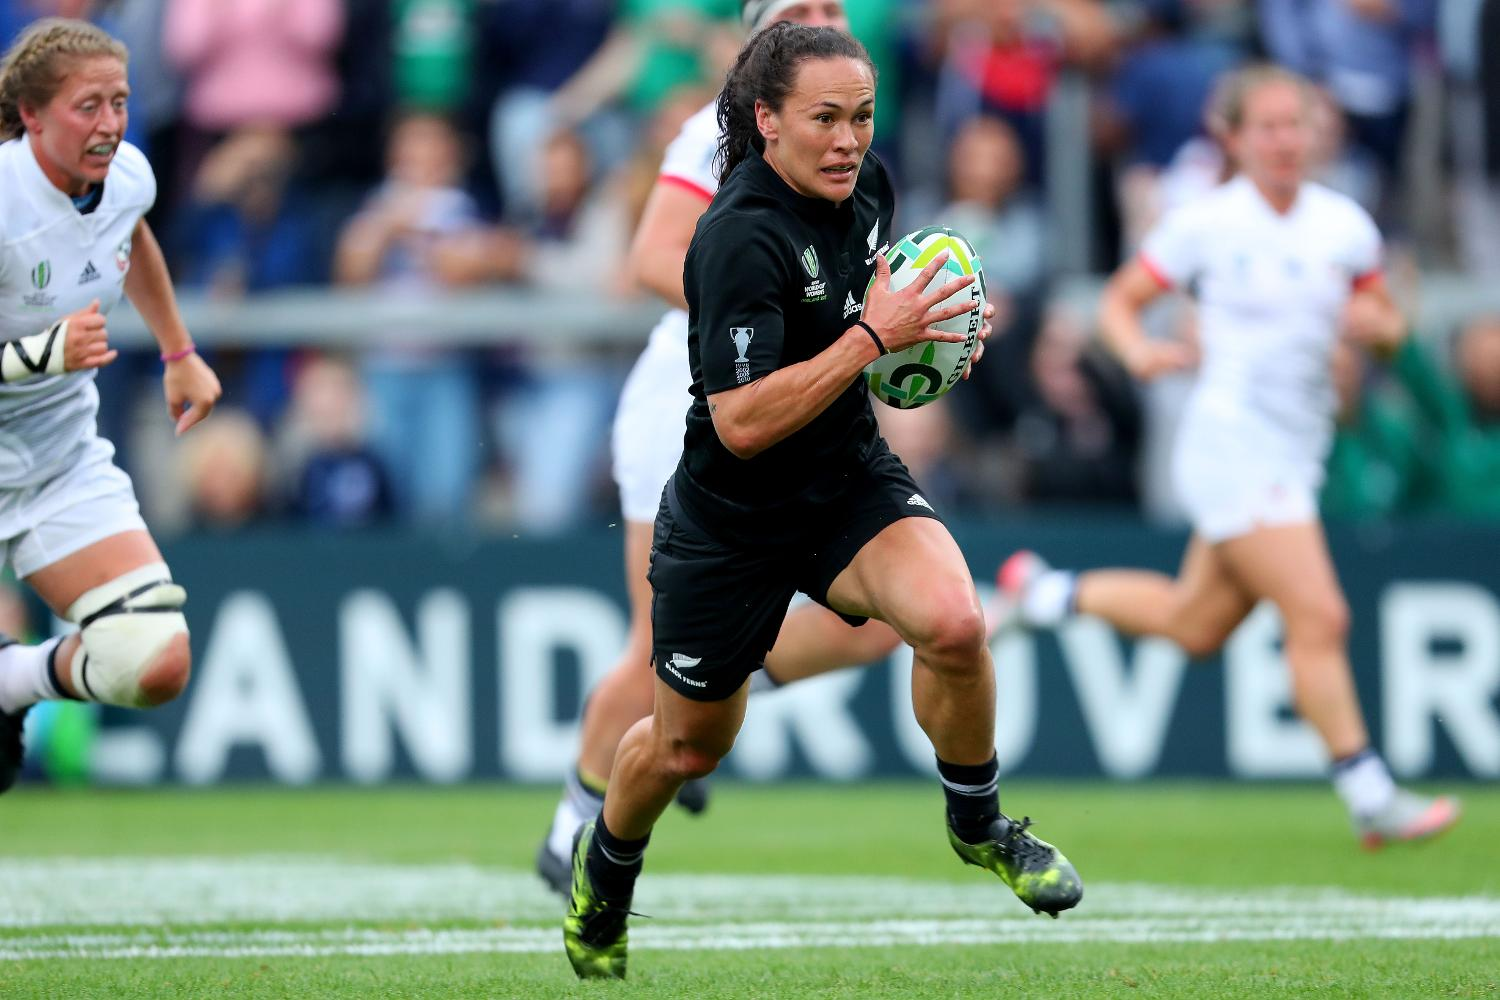 WRWC 2017:  Portia Woodman on her way to scoring a try